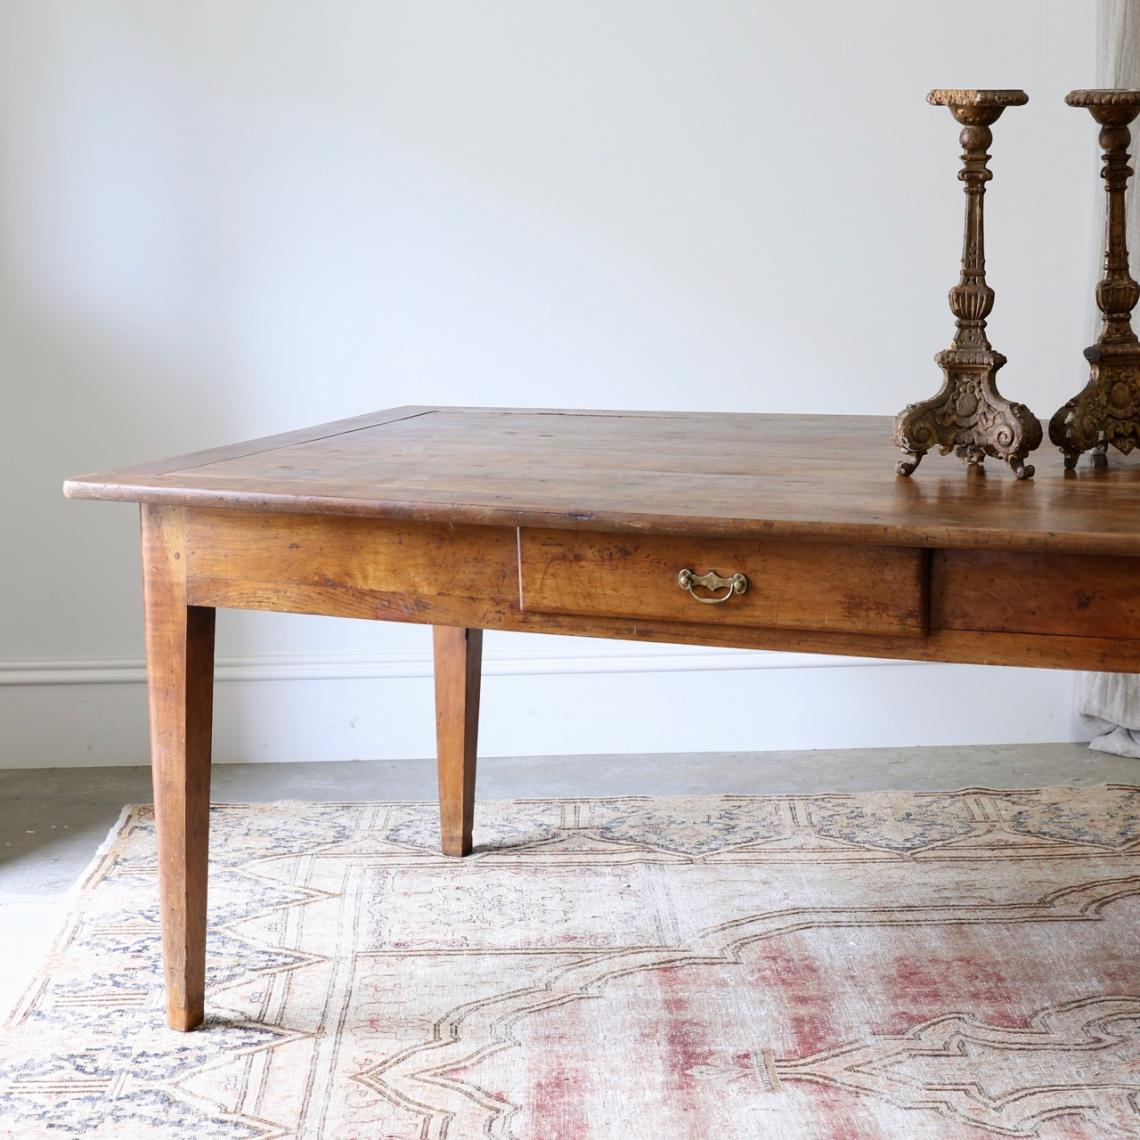 113-01 - Cherrywood French Provincial Dining Table / Three Meters